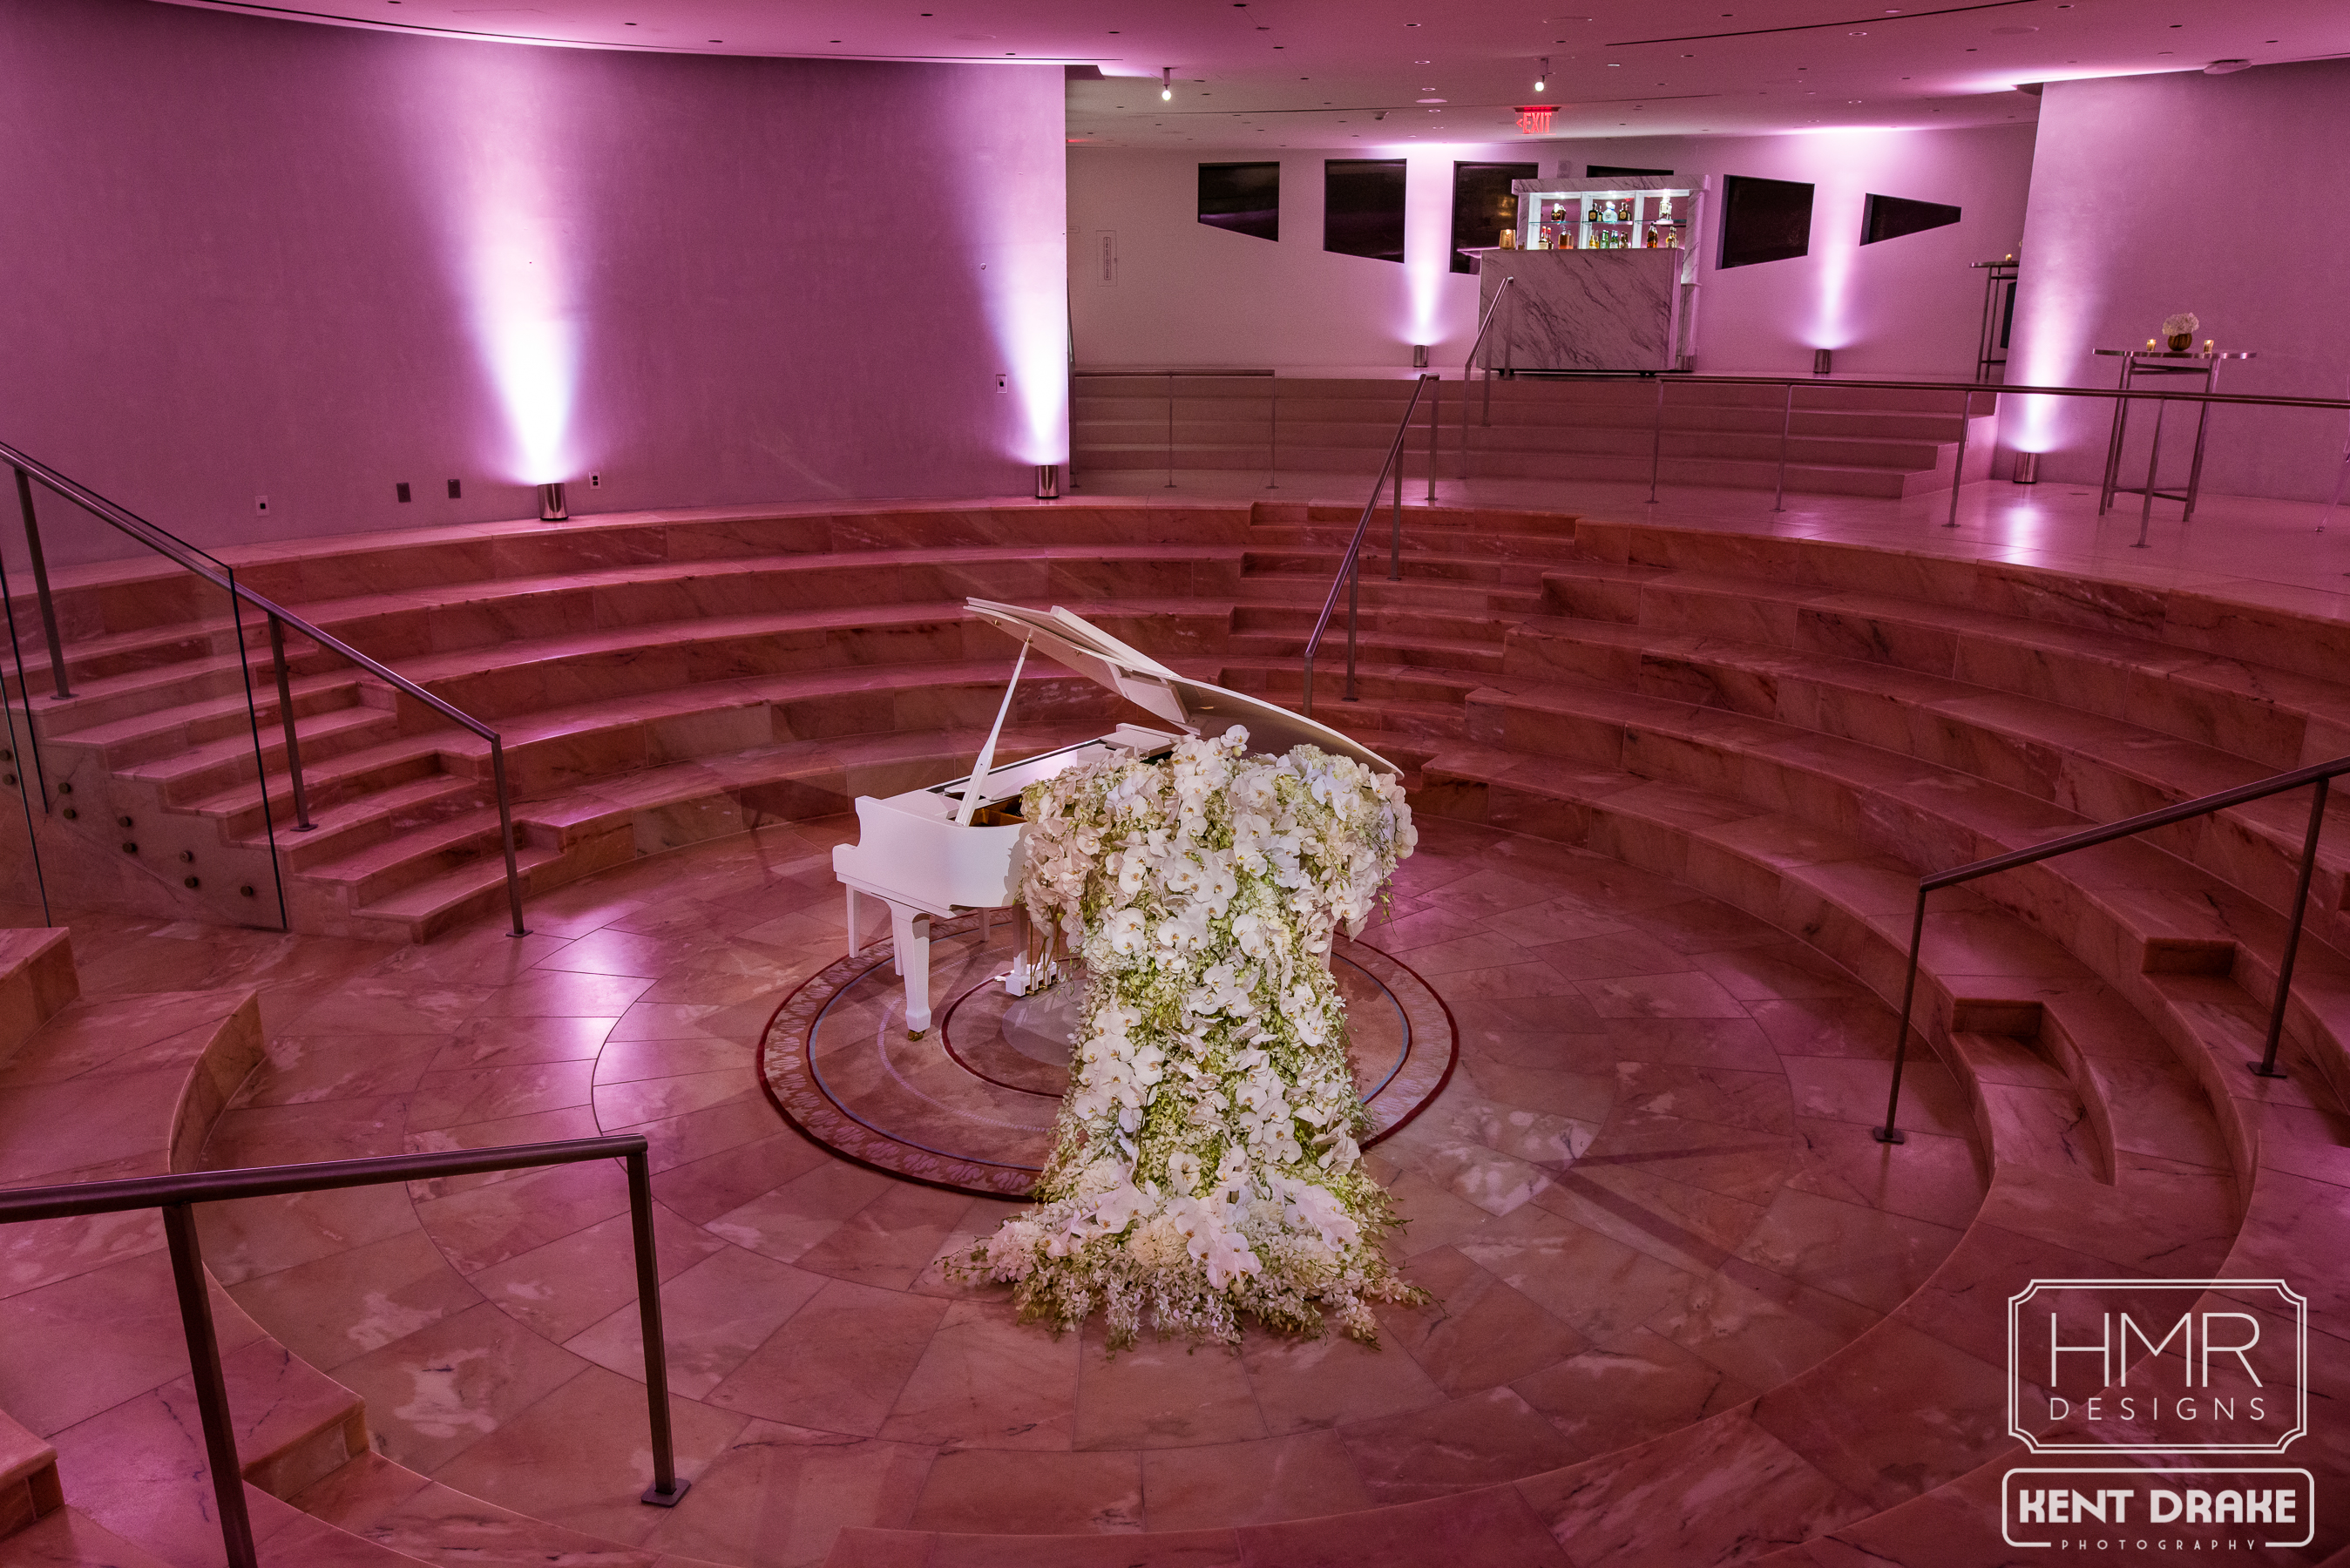 South Beach Wedding At Faena Hotel - Paulette Wolf Events